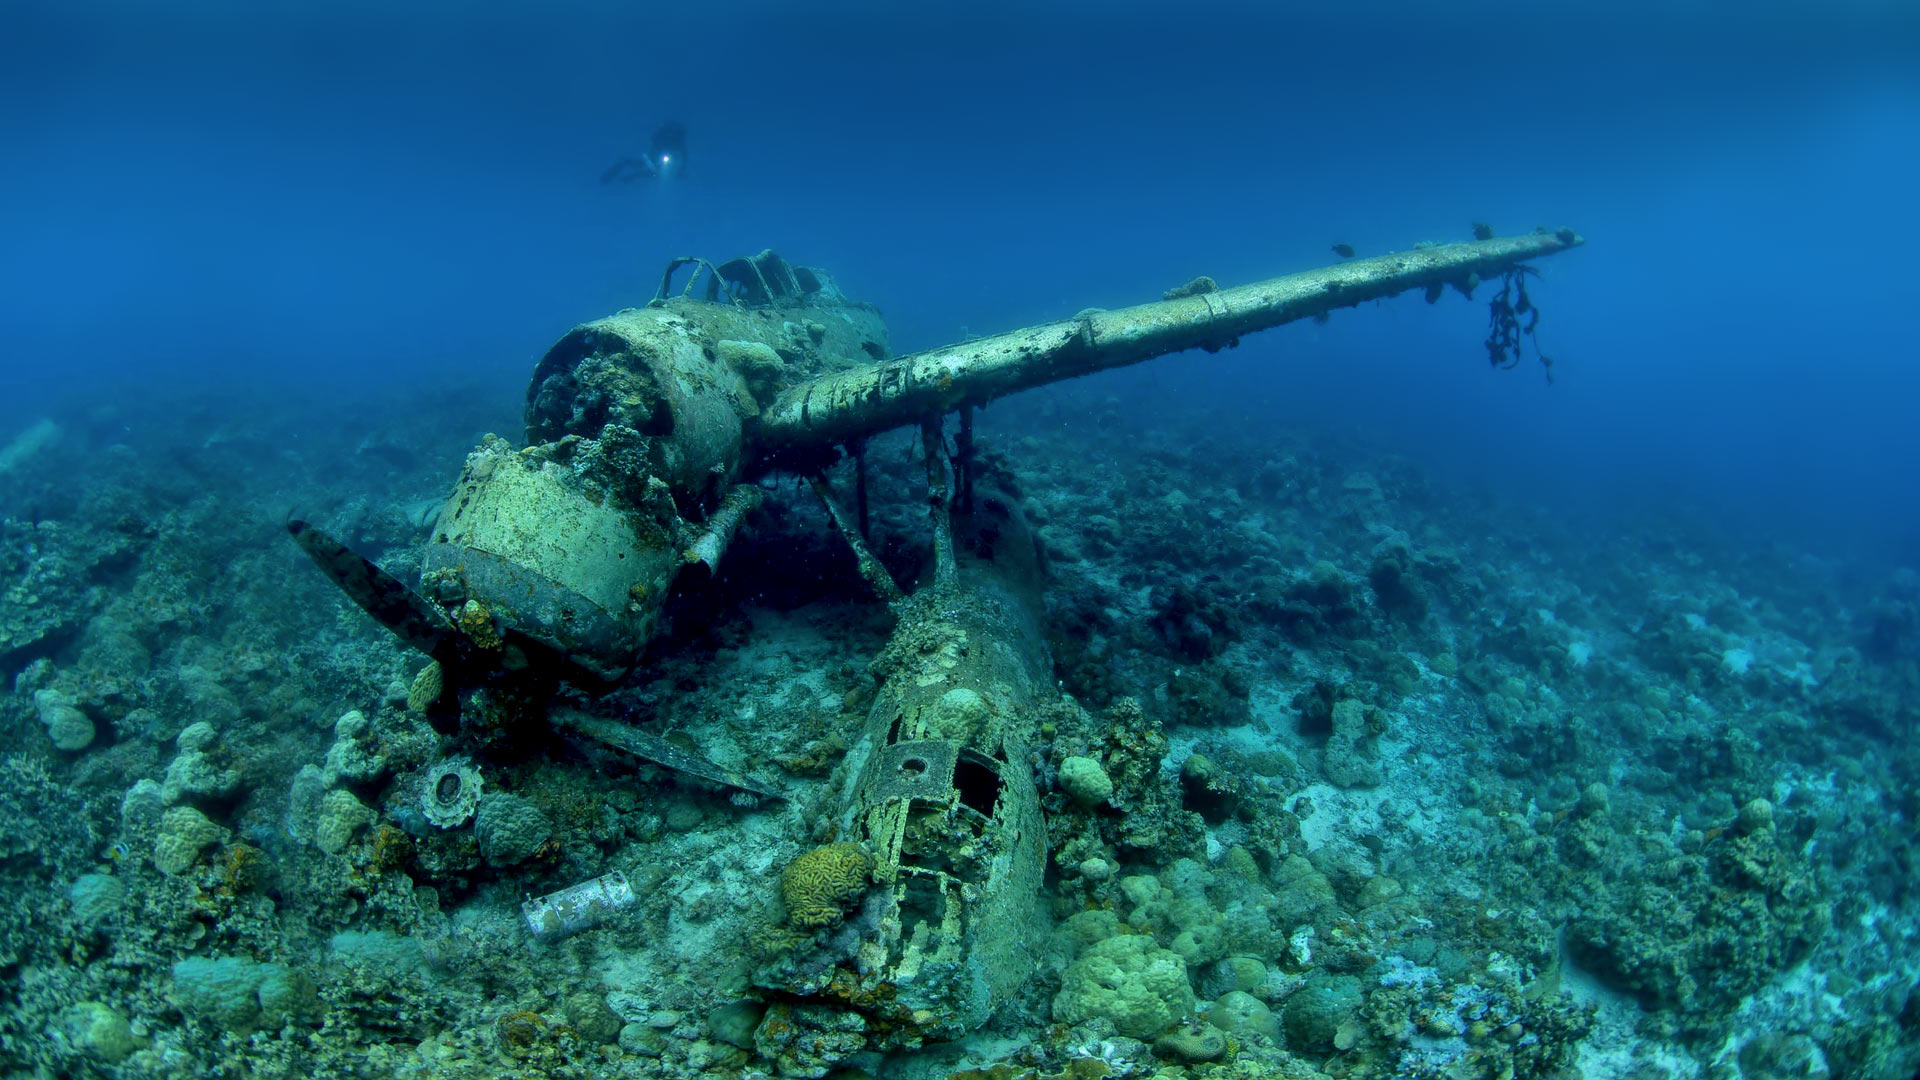 Chuuk Lagoon World War 2 wreck.